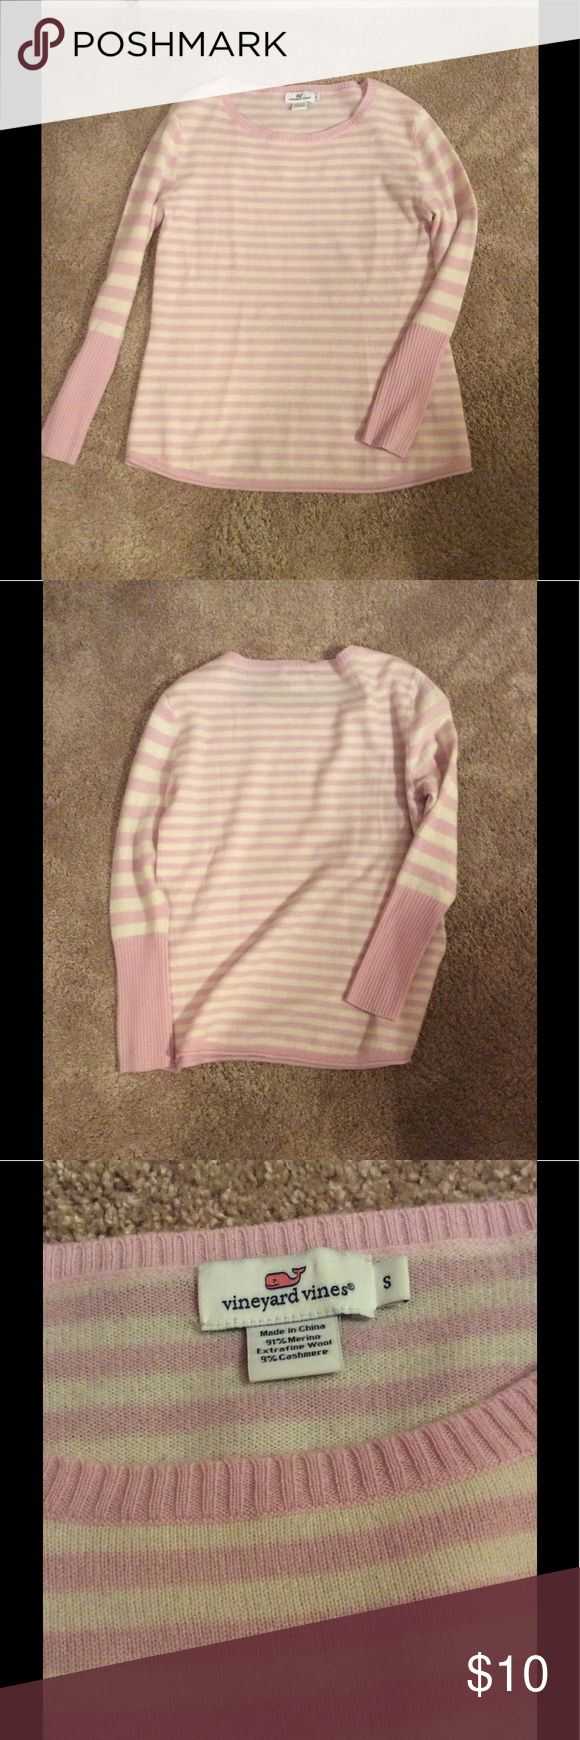 Striped lightweight sweater Light pink and white striped Vineyard Vines long sleeve, lightweight sweater. Only worn a few times but there is a decent amount of pilling near the arms (as seen in 4th pic) but nothing a good comb or pill remover can't fix. Crew neck, verging on boat neck. Super cute and soft. Make me an offer! Size small but Vineyard Vines tends to run large (I'm usually a medium) Vineyard Vines Sweaters Crew & Scoop Necks